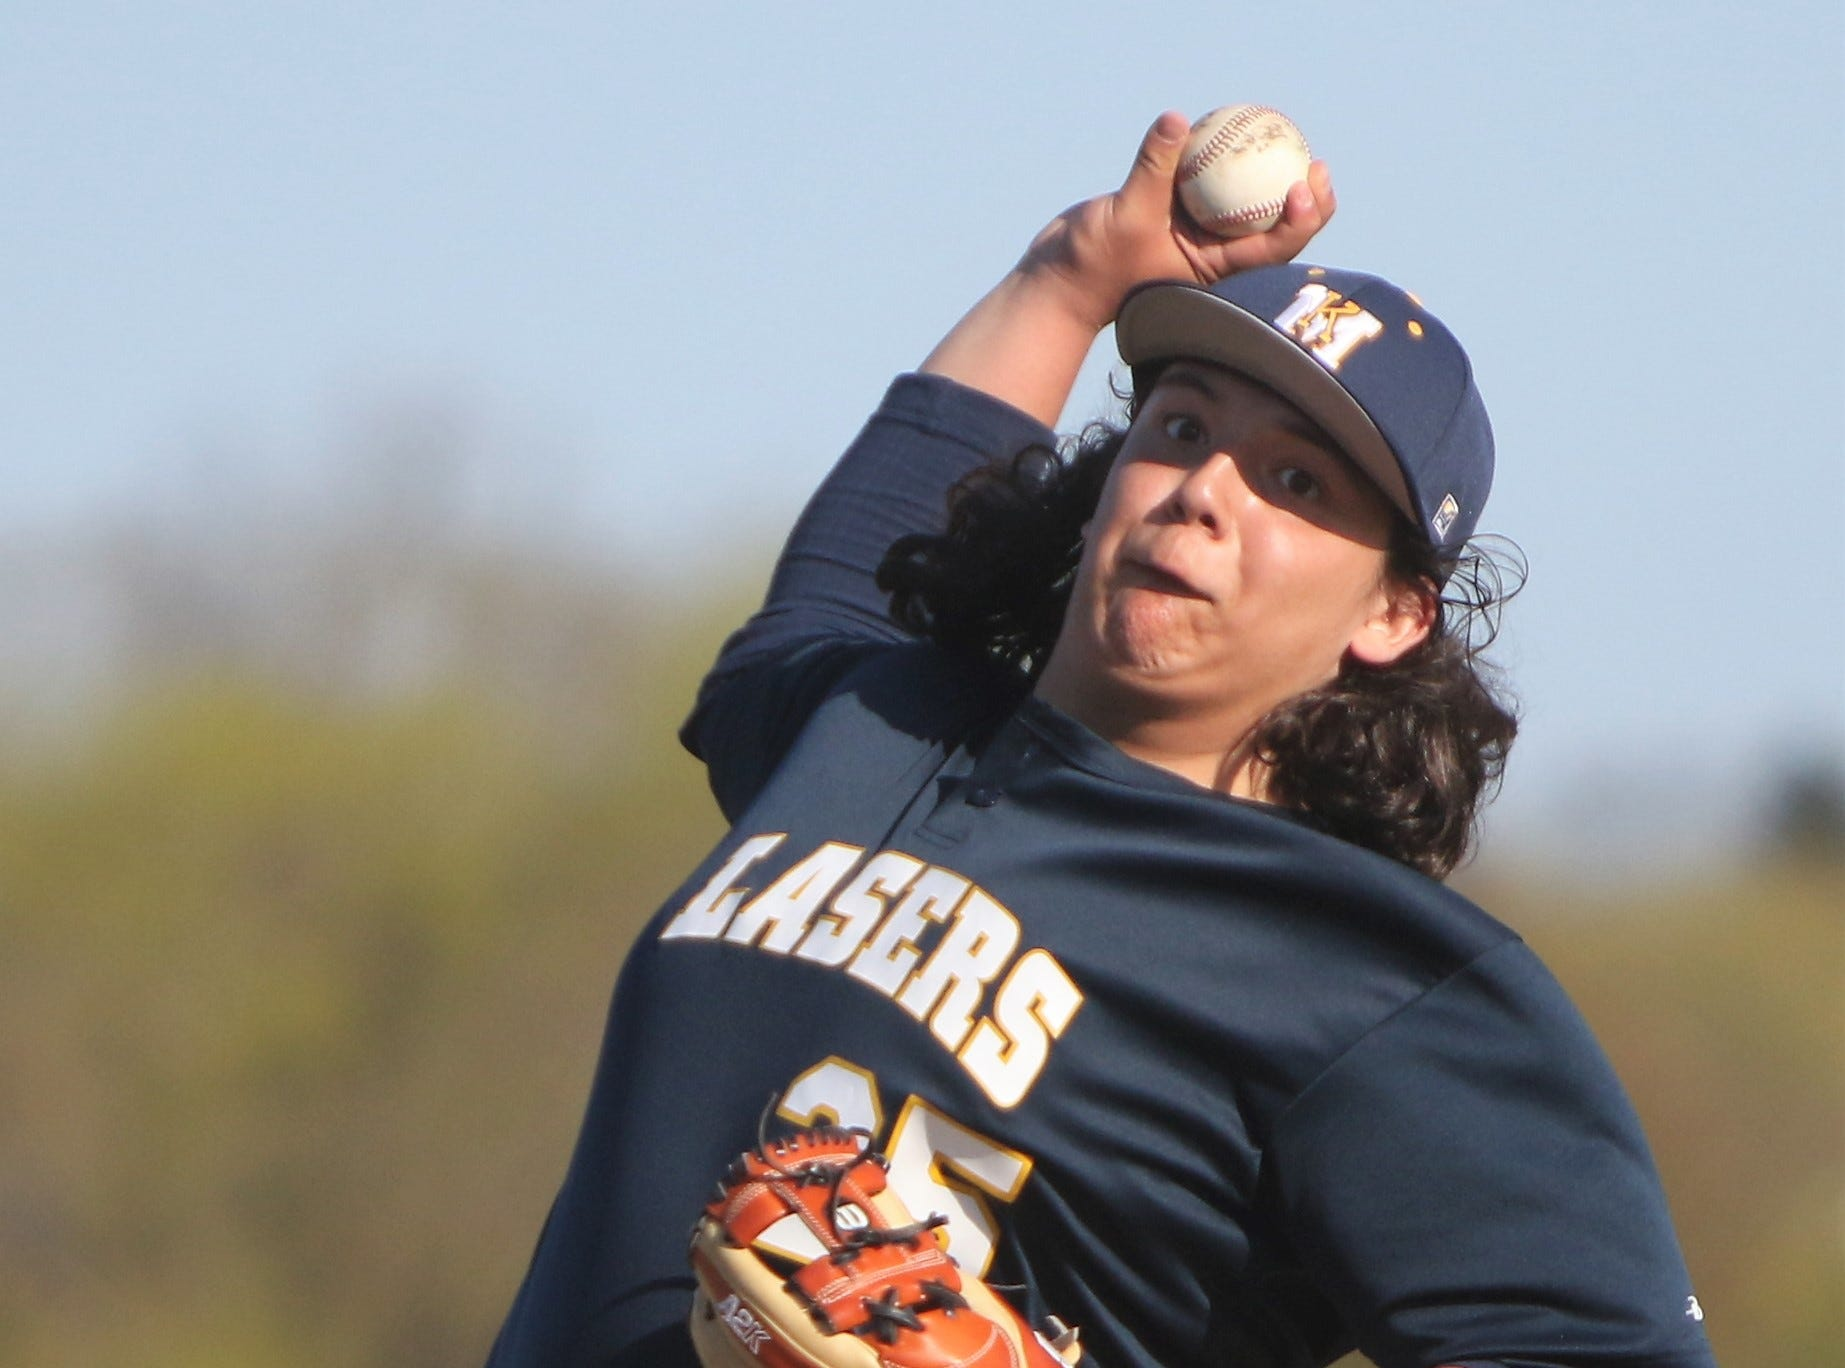 Kettle Moraine pitcher Diego Gutierrez delivers a pitch against Catholic Memorial on May 13, 2019.